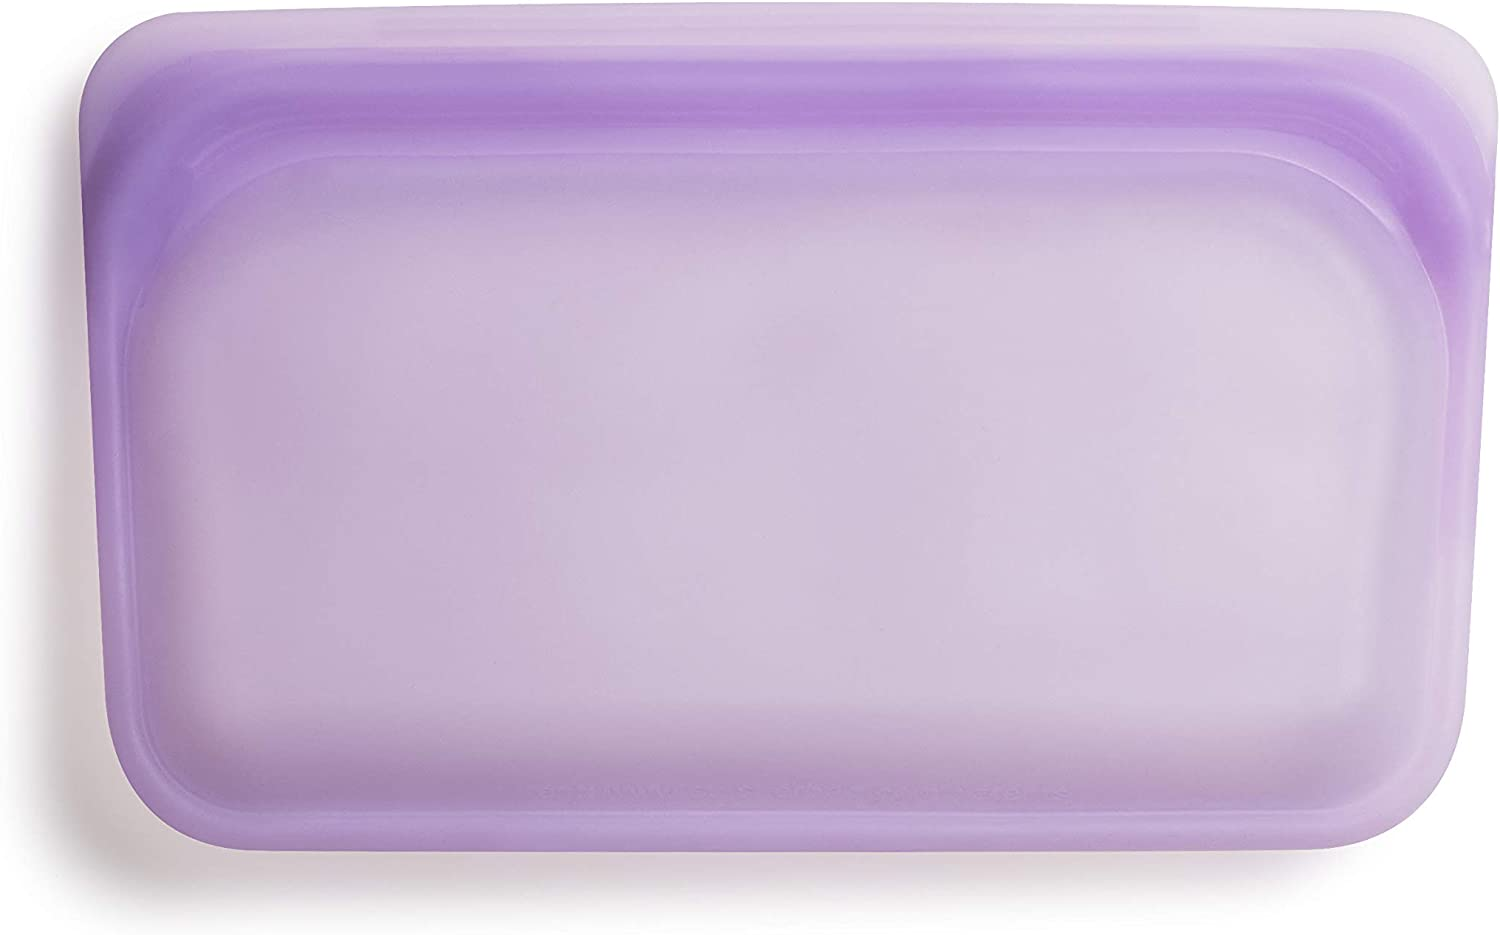 Stasher Platinum Silicone Food Grade Reusable Storage Bag, Purple Rainbow (Snack)   Reduce Single-Use Plastic   Cook, Store, Sous Vide, or Freeze   Leakproof, Dishwasher-Safe, Eco-friendly   9.9 Oz